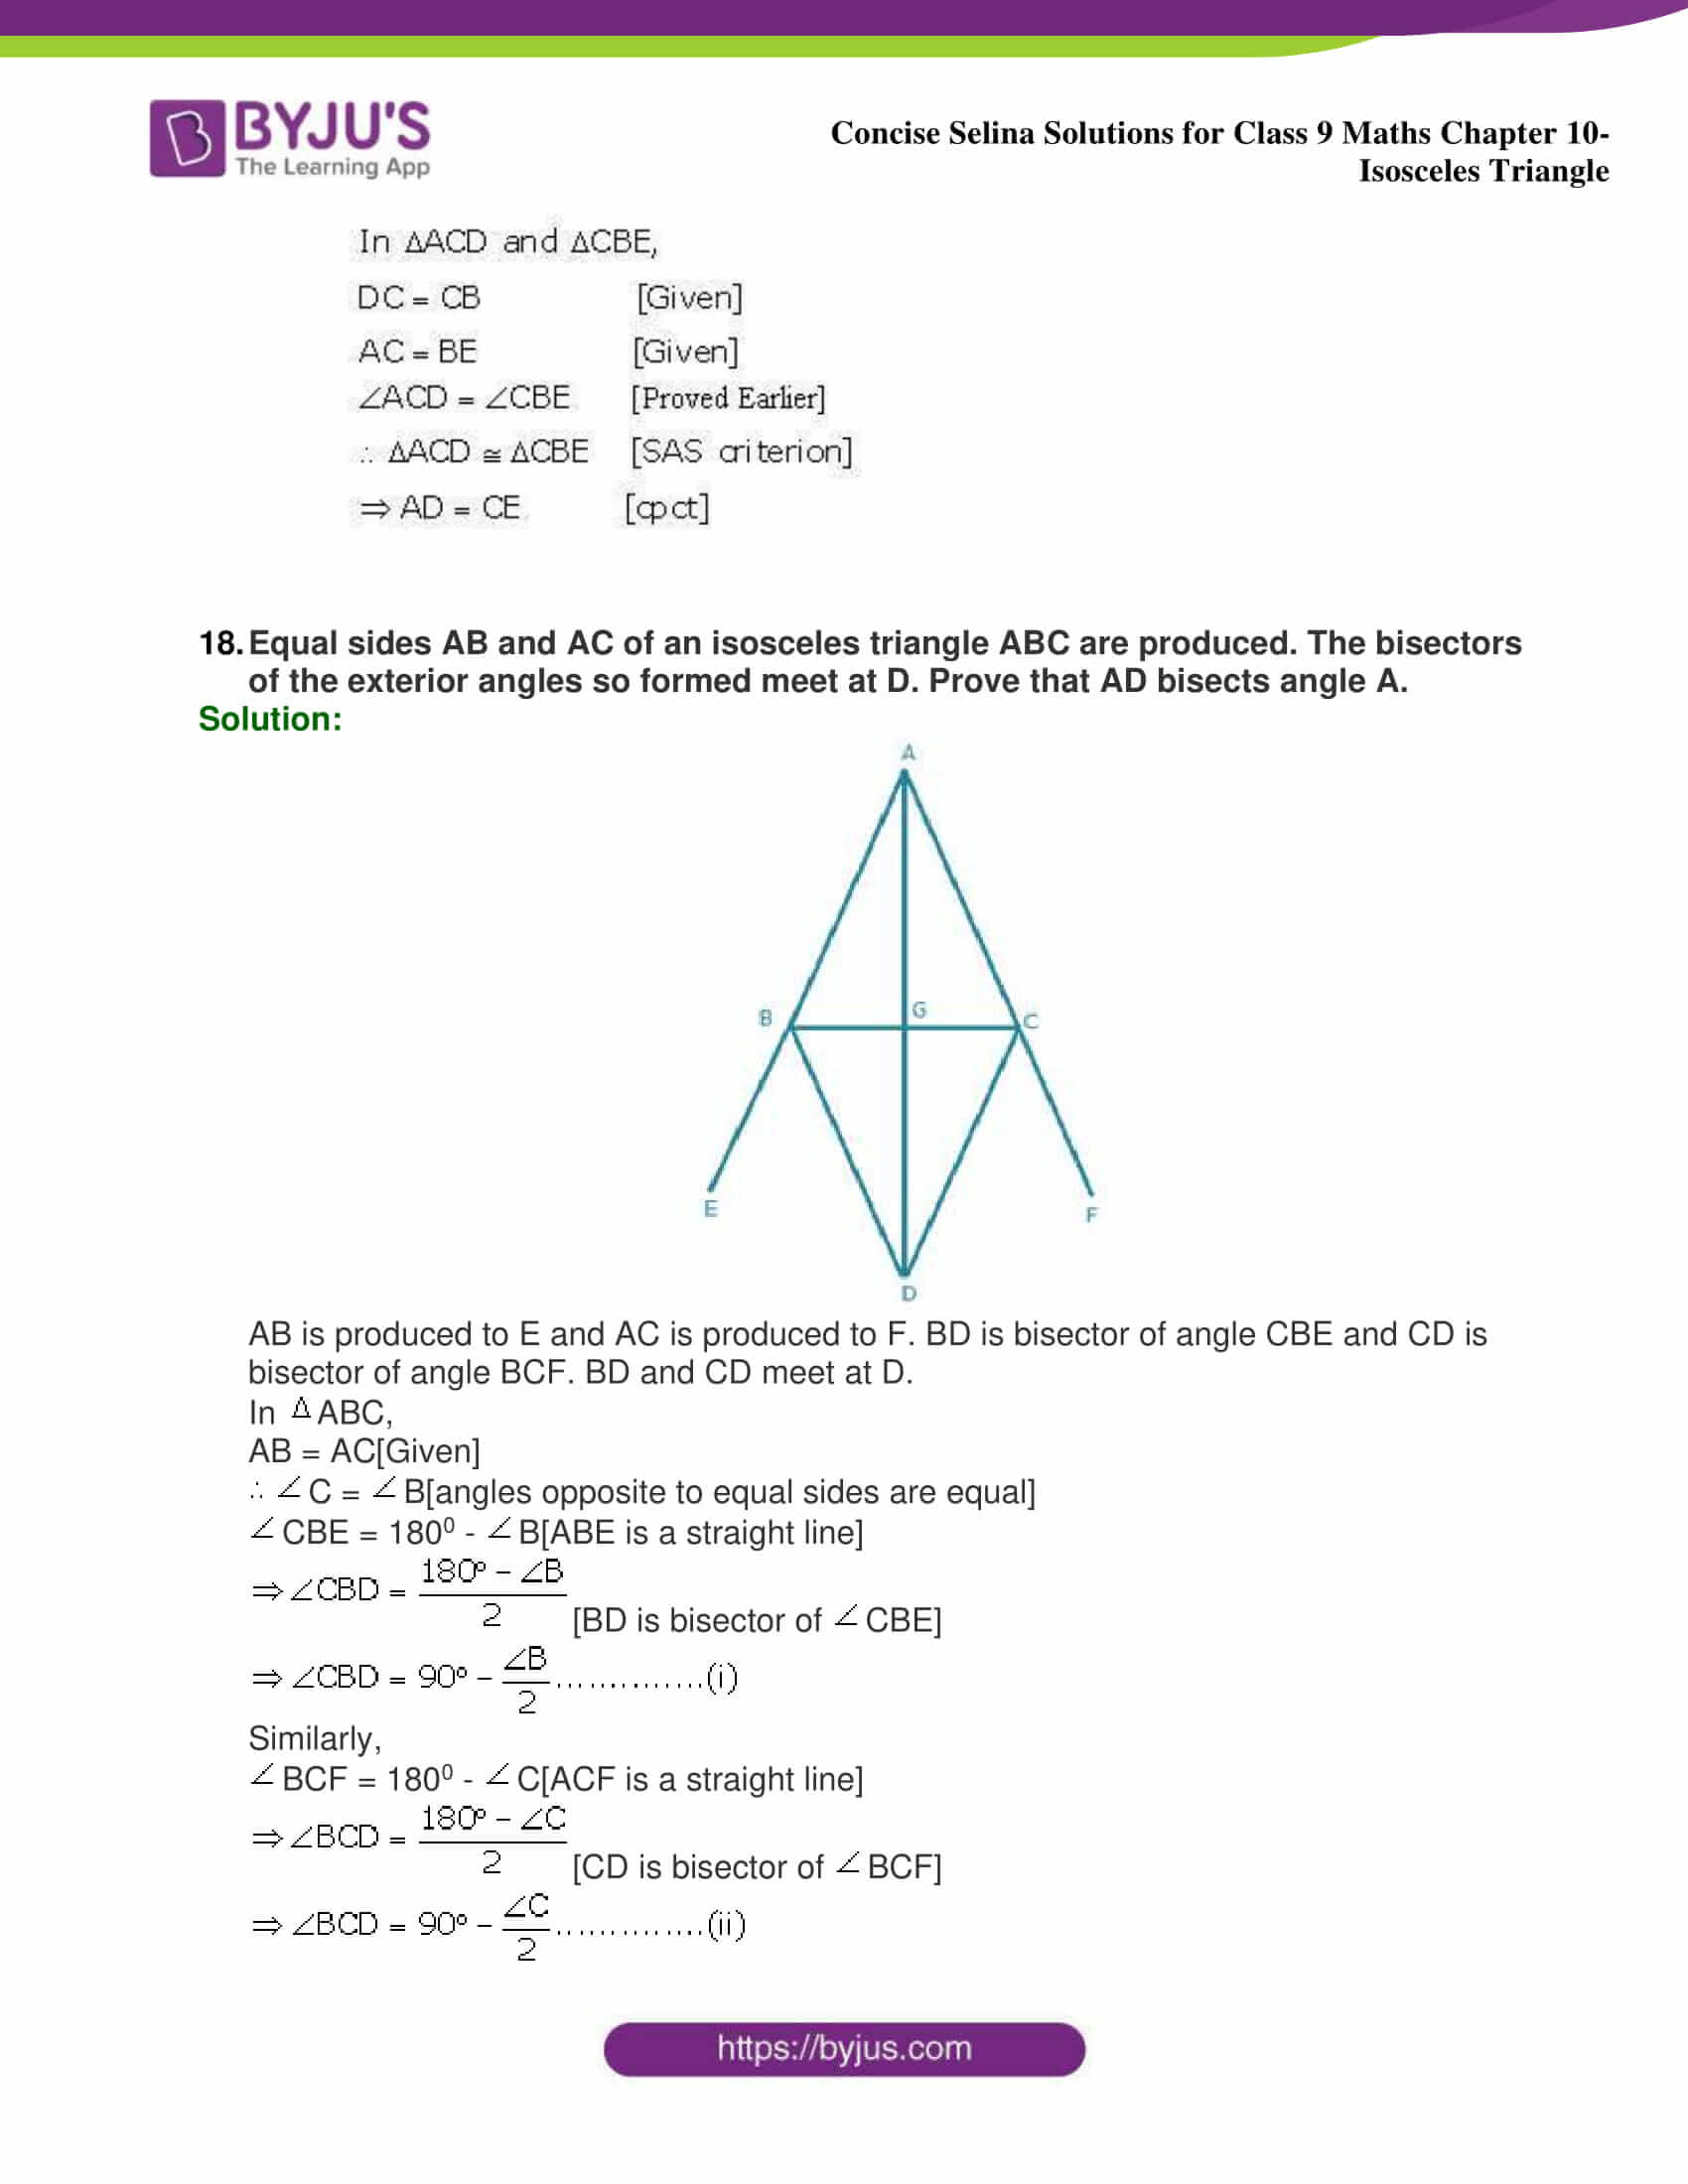 selina Solutions for Class 9 Maths Chapter 10 part 37